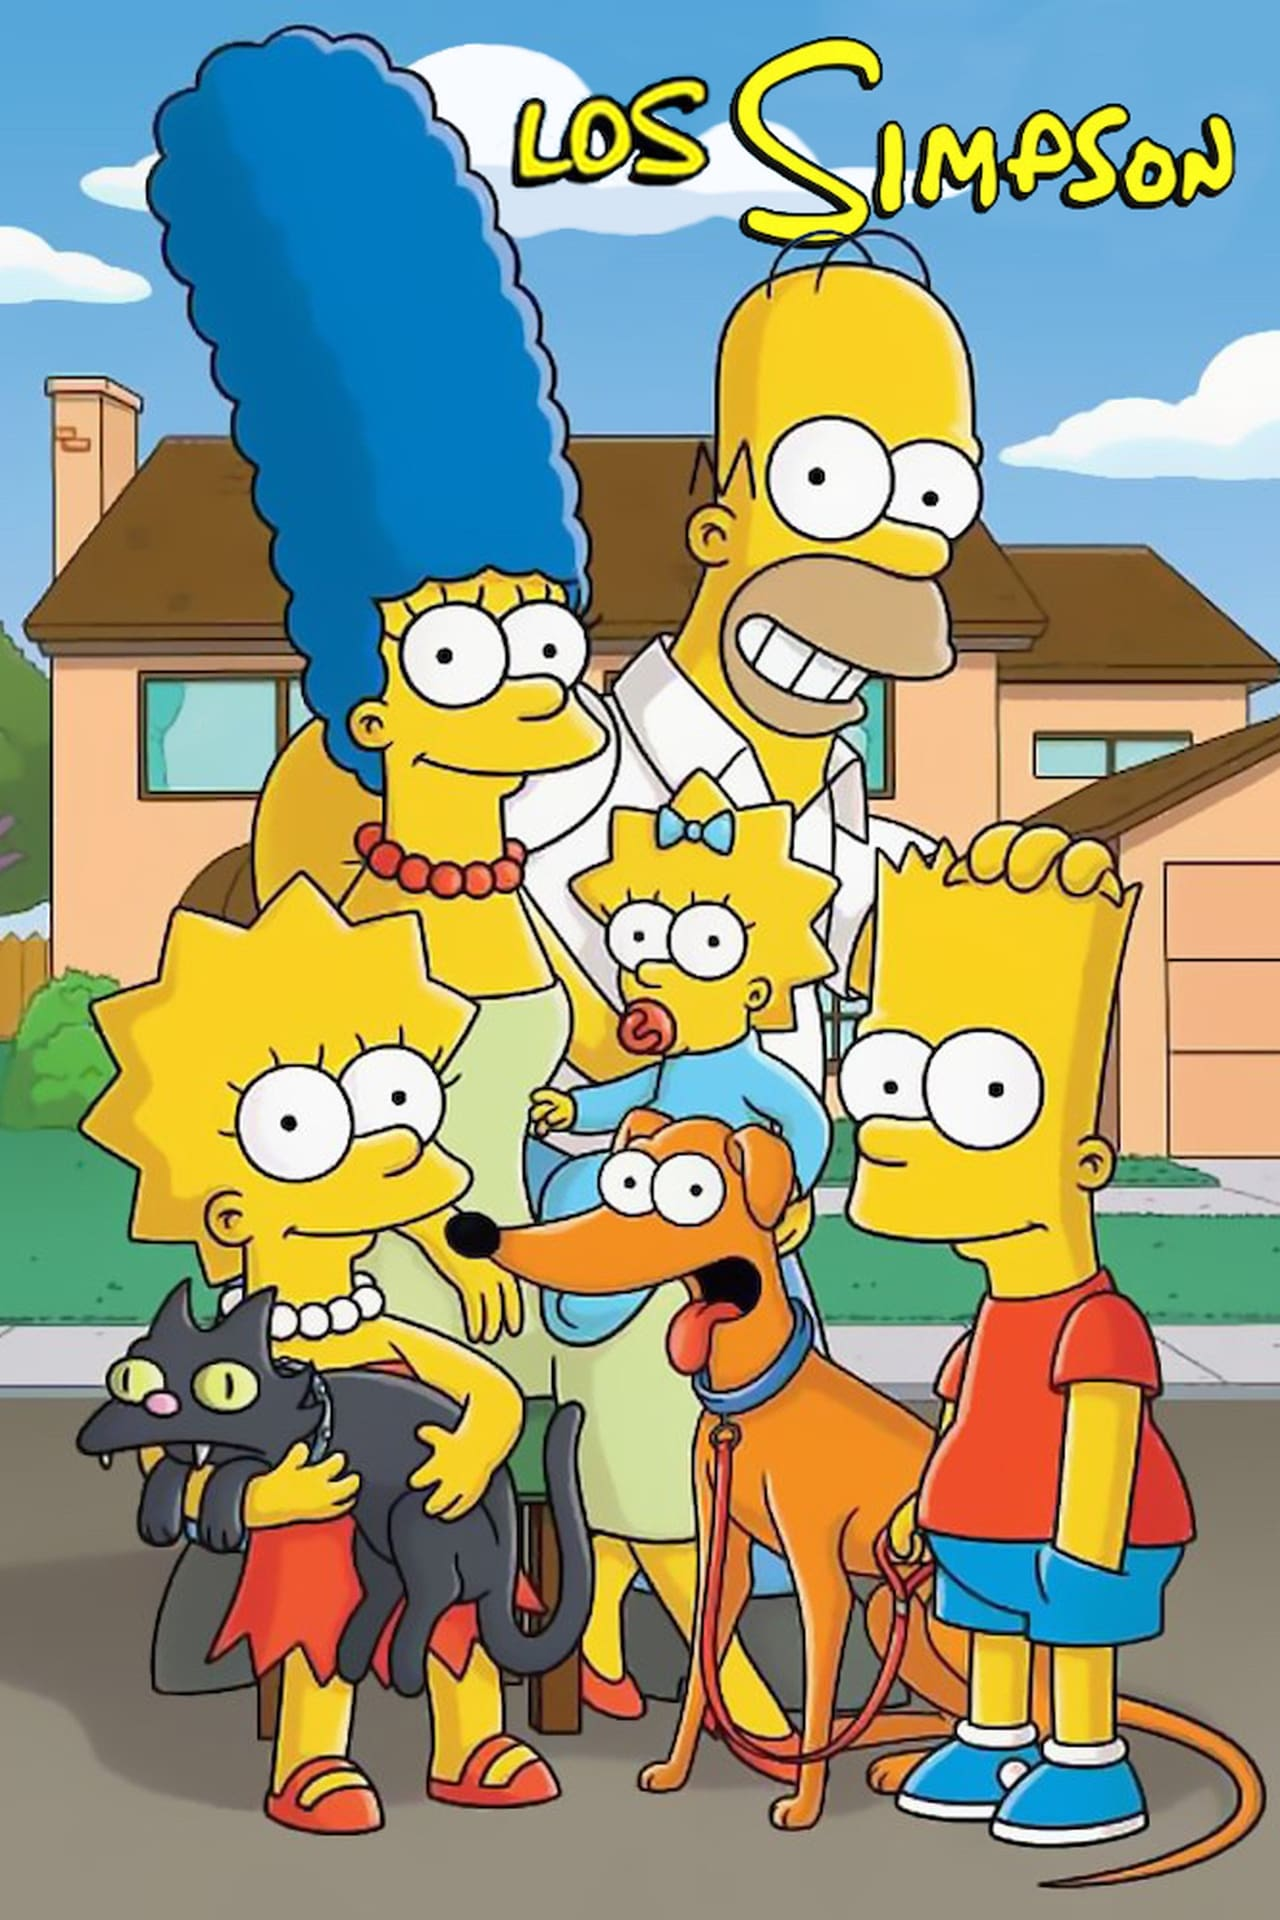 Los Simpson - Season 31 Episode 3 : Episodio 3